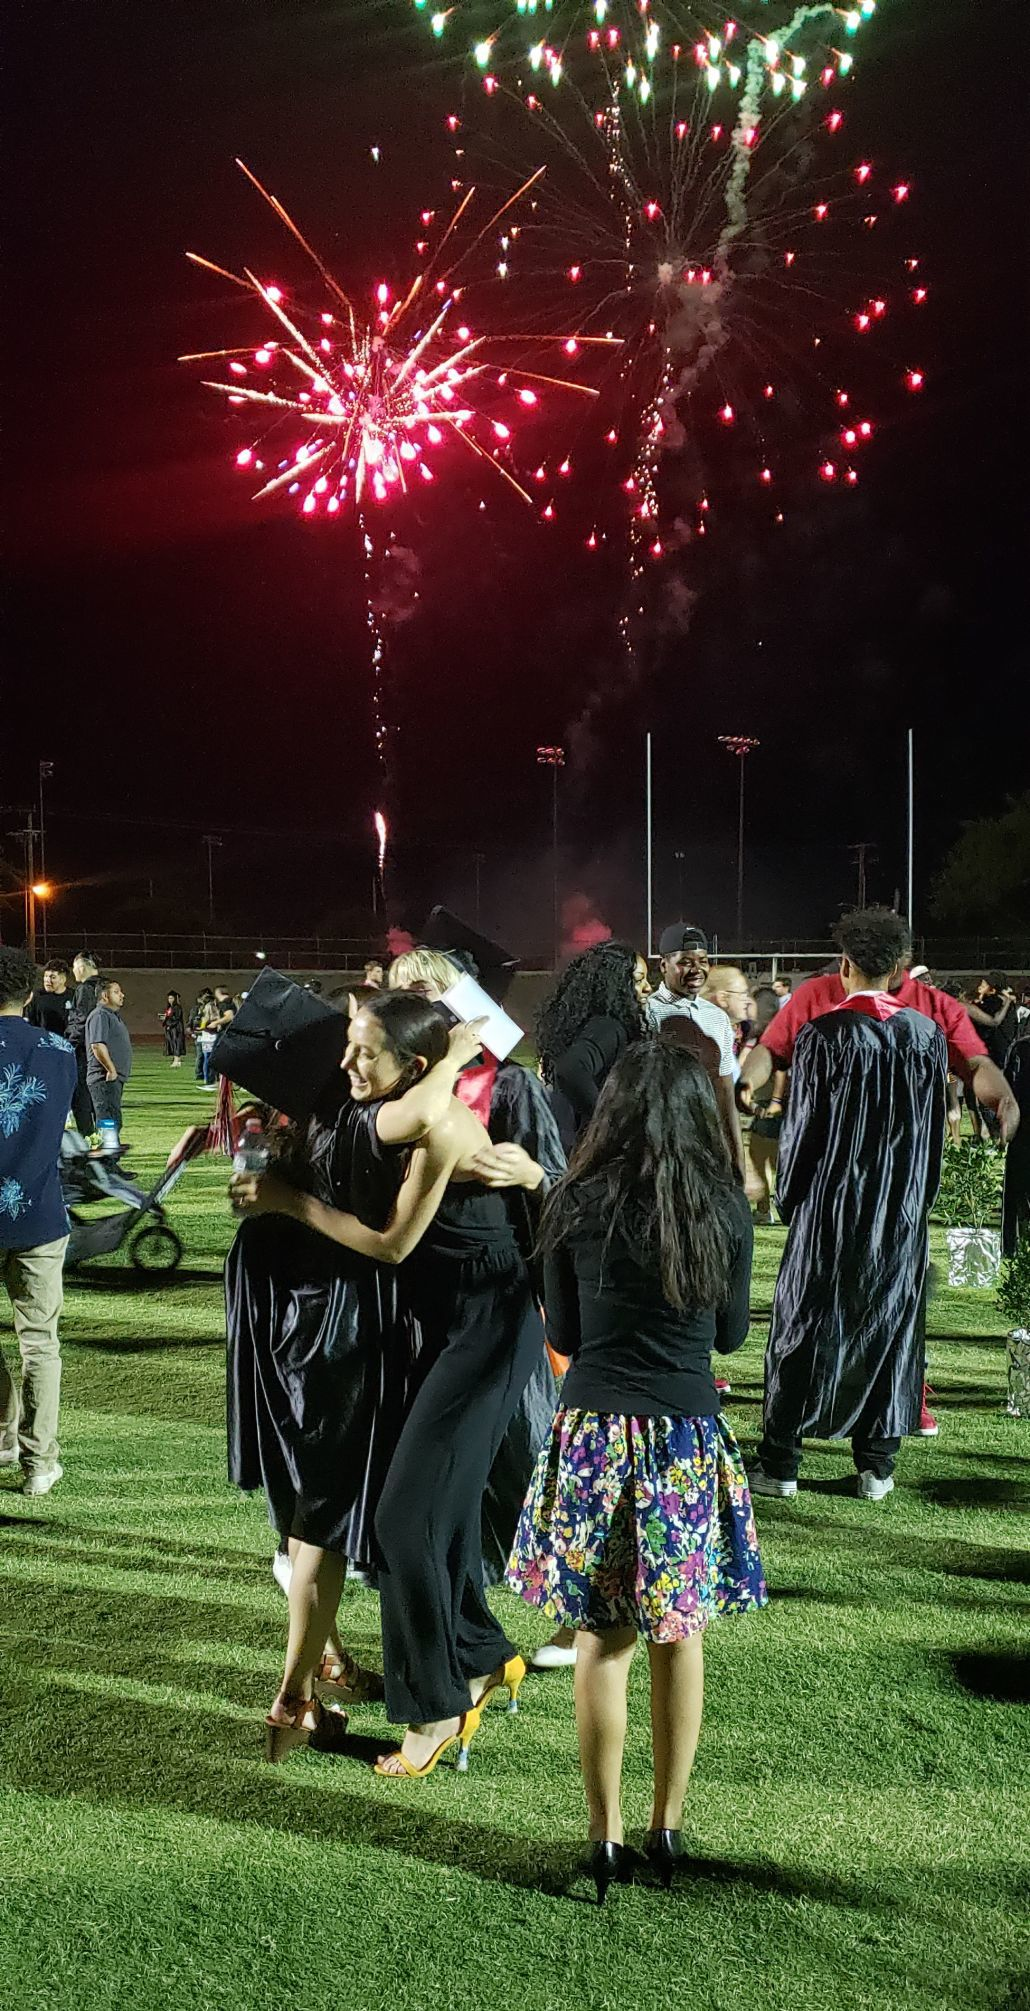 hanford high graduation 2019 fireworks